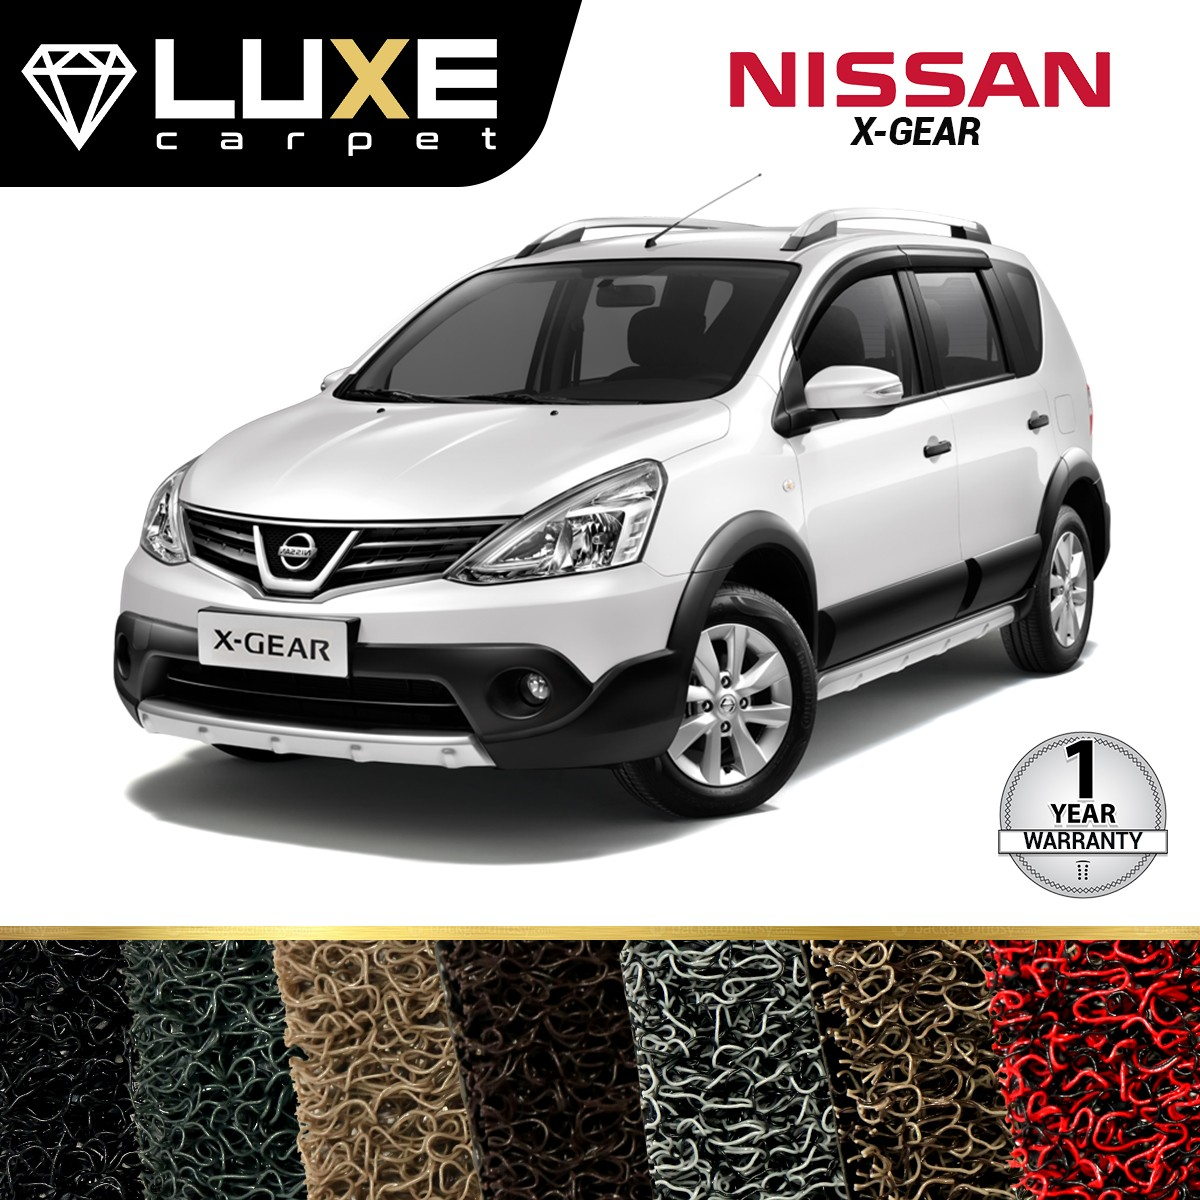 KARPET LUXE NISSAN LIVINA X-GEAR 2012 UP - GOLD SERIES - NON BAGASI